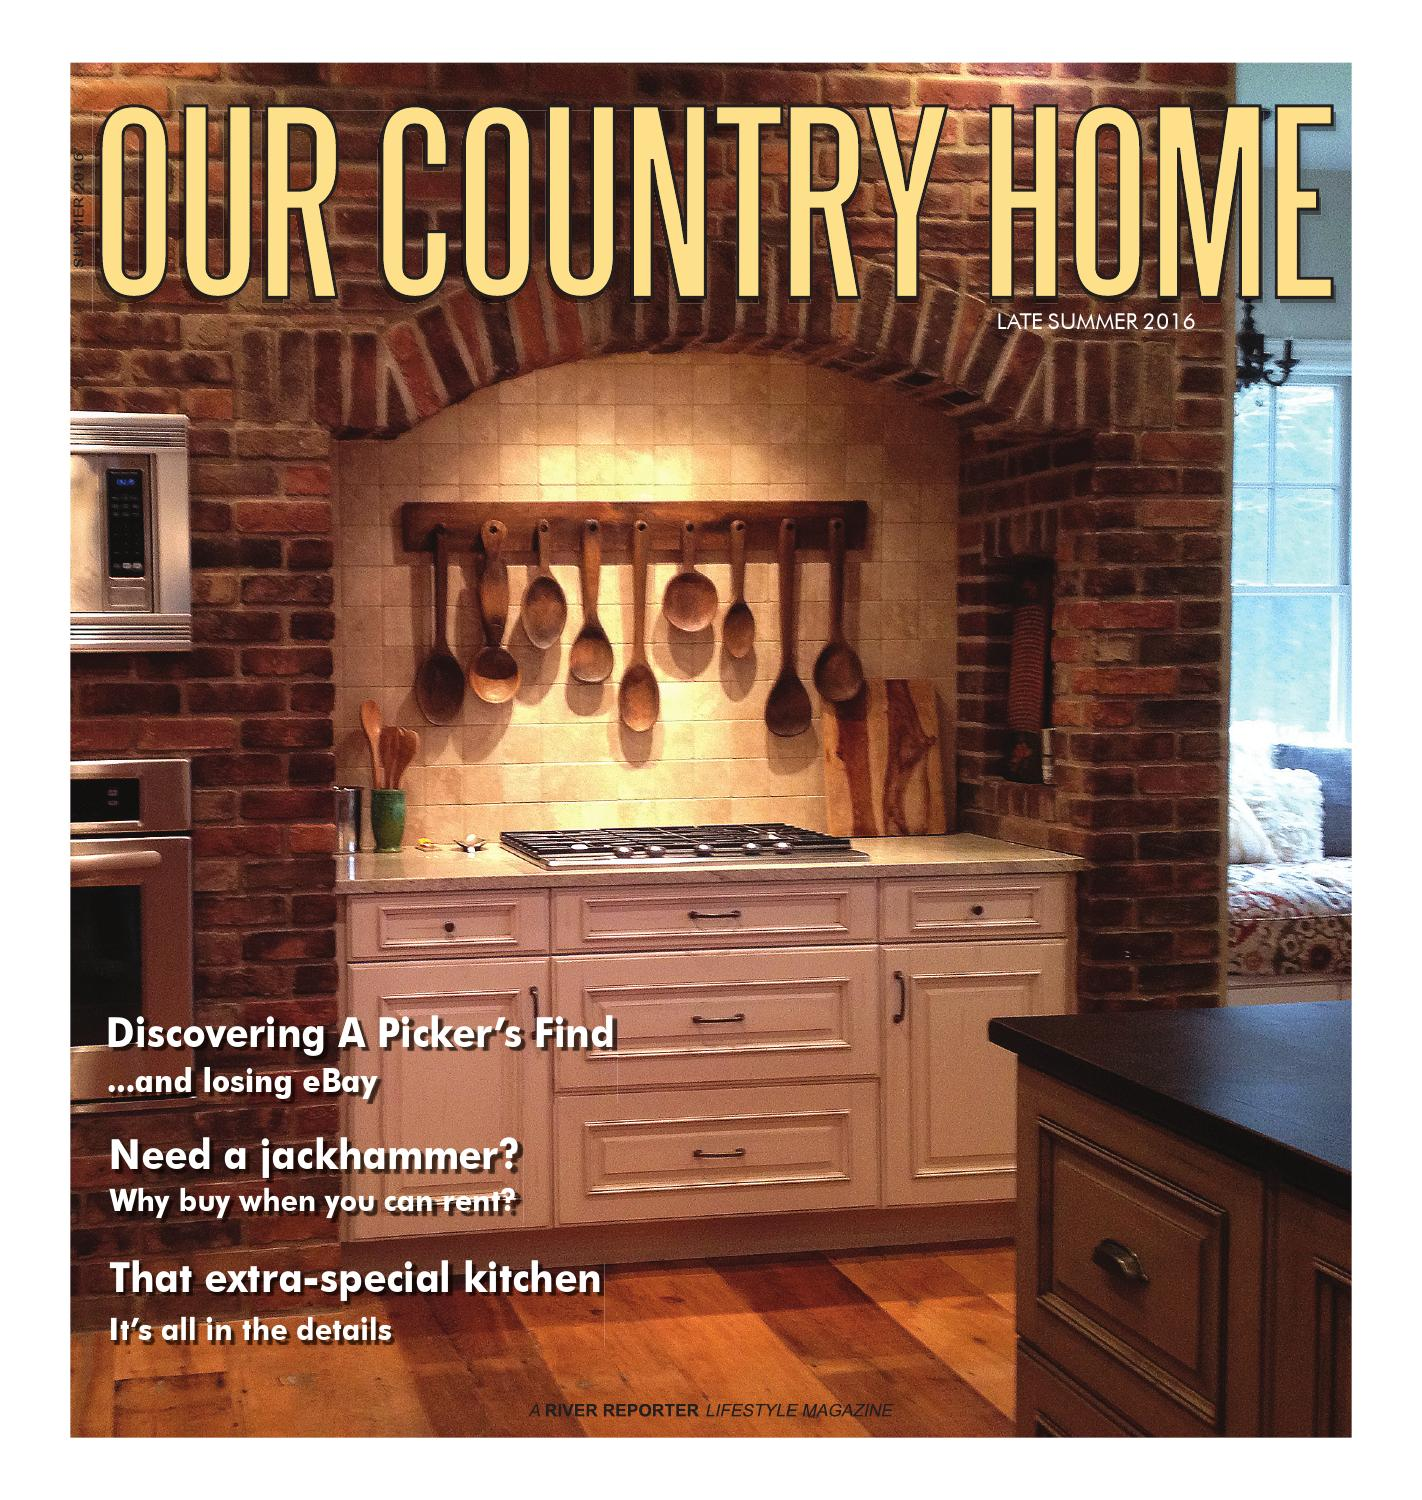 stylist design designer kitchens honesdale pa.  Our Country Home Late Summer 2016 by Stuart Communications issuu